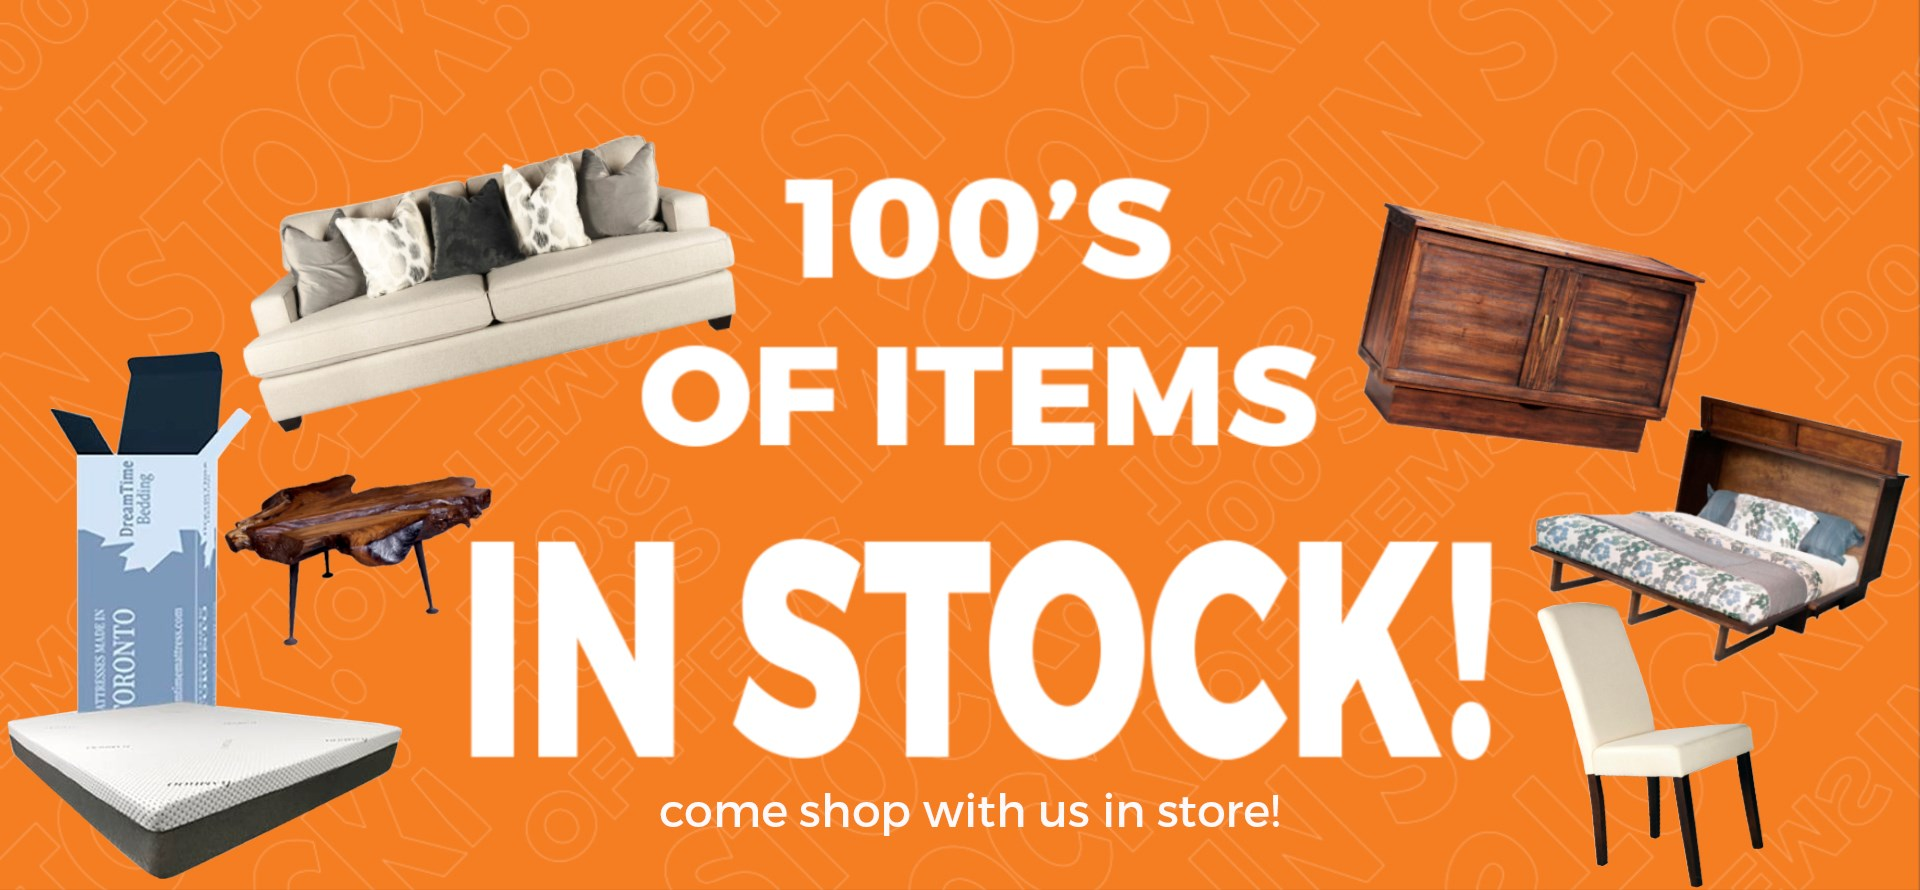 100's OF ITEMS IN STOCK